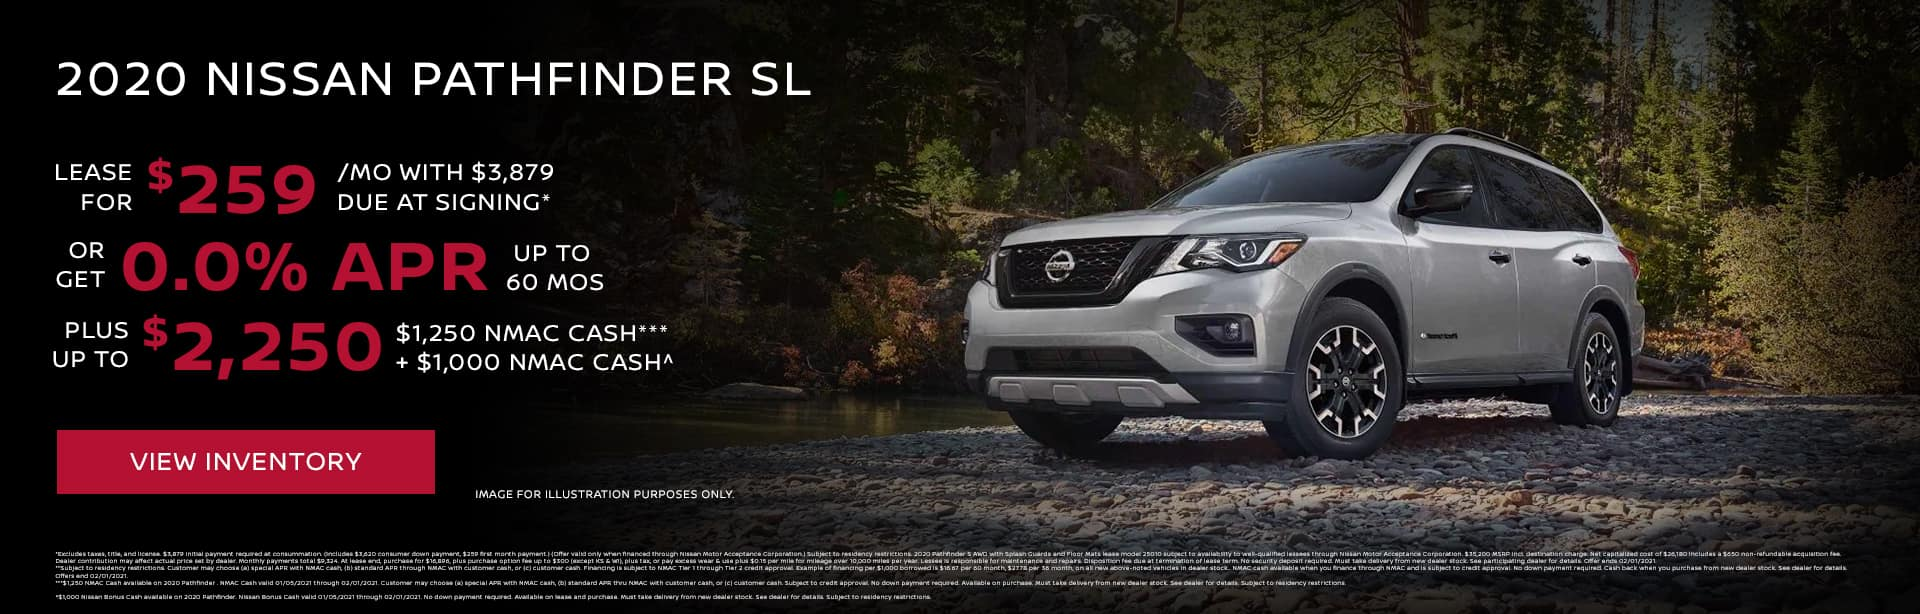 2020 Nissan Pathfinder SL Lease for $259/mo with $3,879 due at signing* OR 0.0% APR financing up to 60 months** PLUS $2,250 total savings ($1,250 NMAC Cash*** + $1,000 NMAC Cash^)